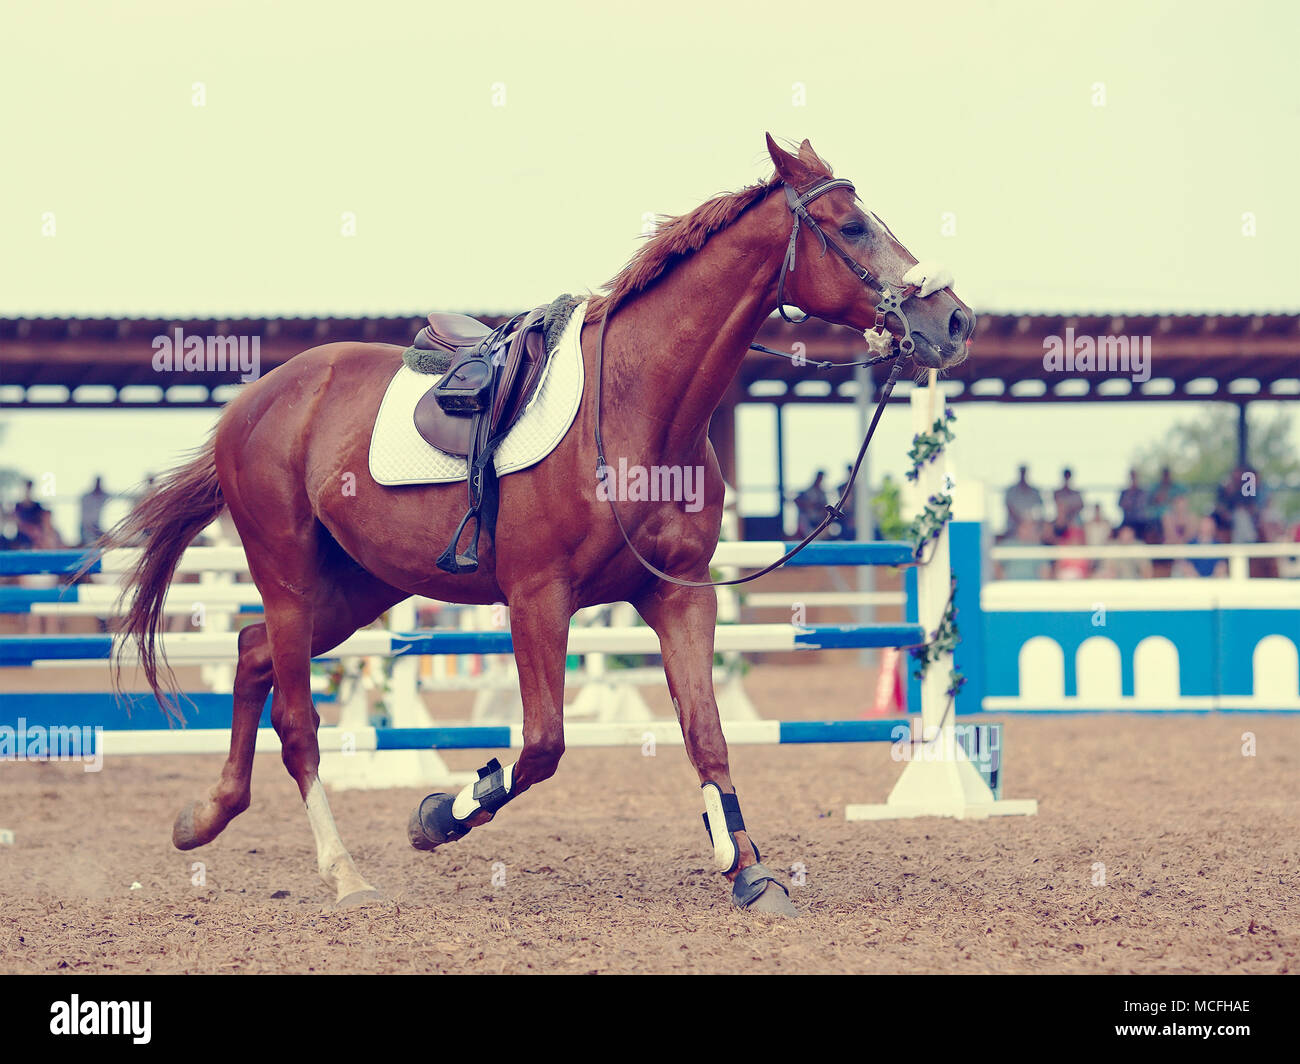 Sports horse in the field for competitions. - Stock Image